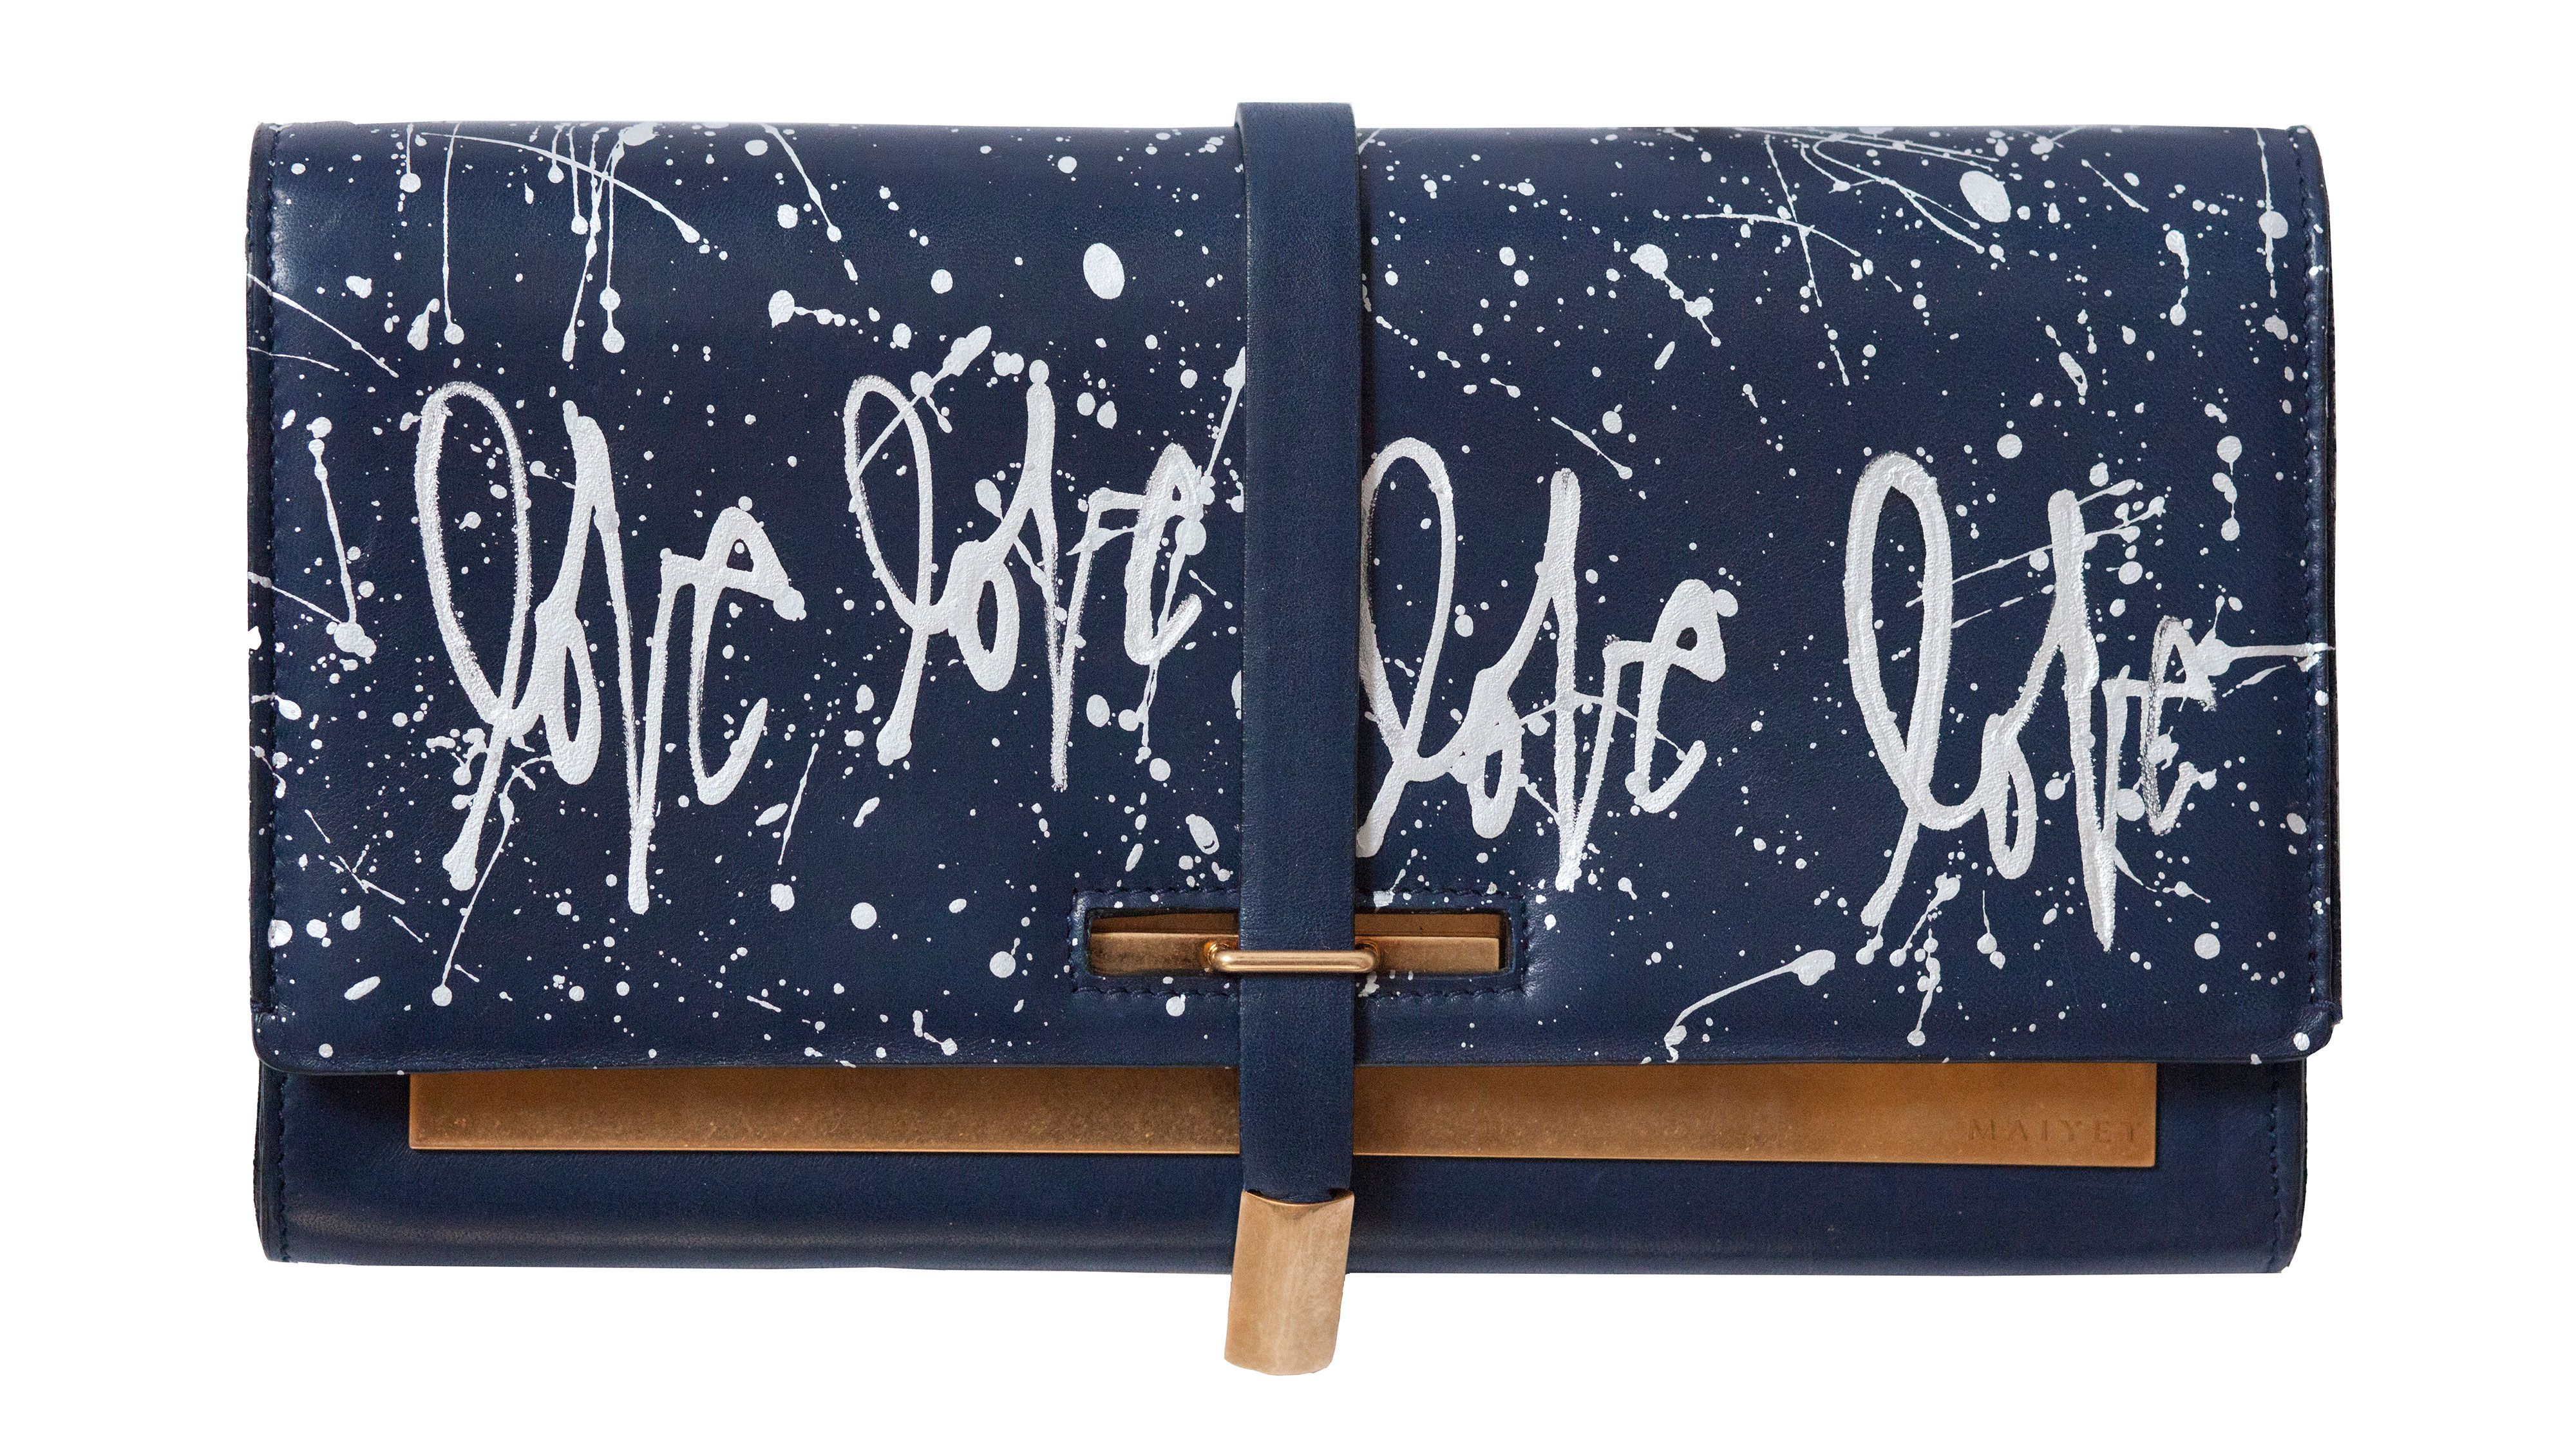 A Clutch That's All About Love